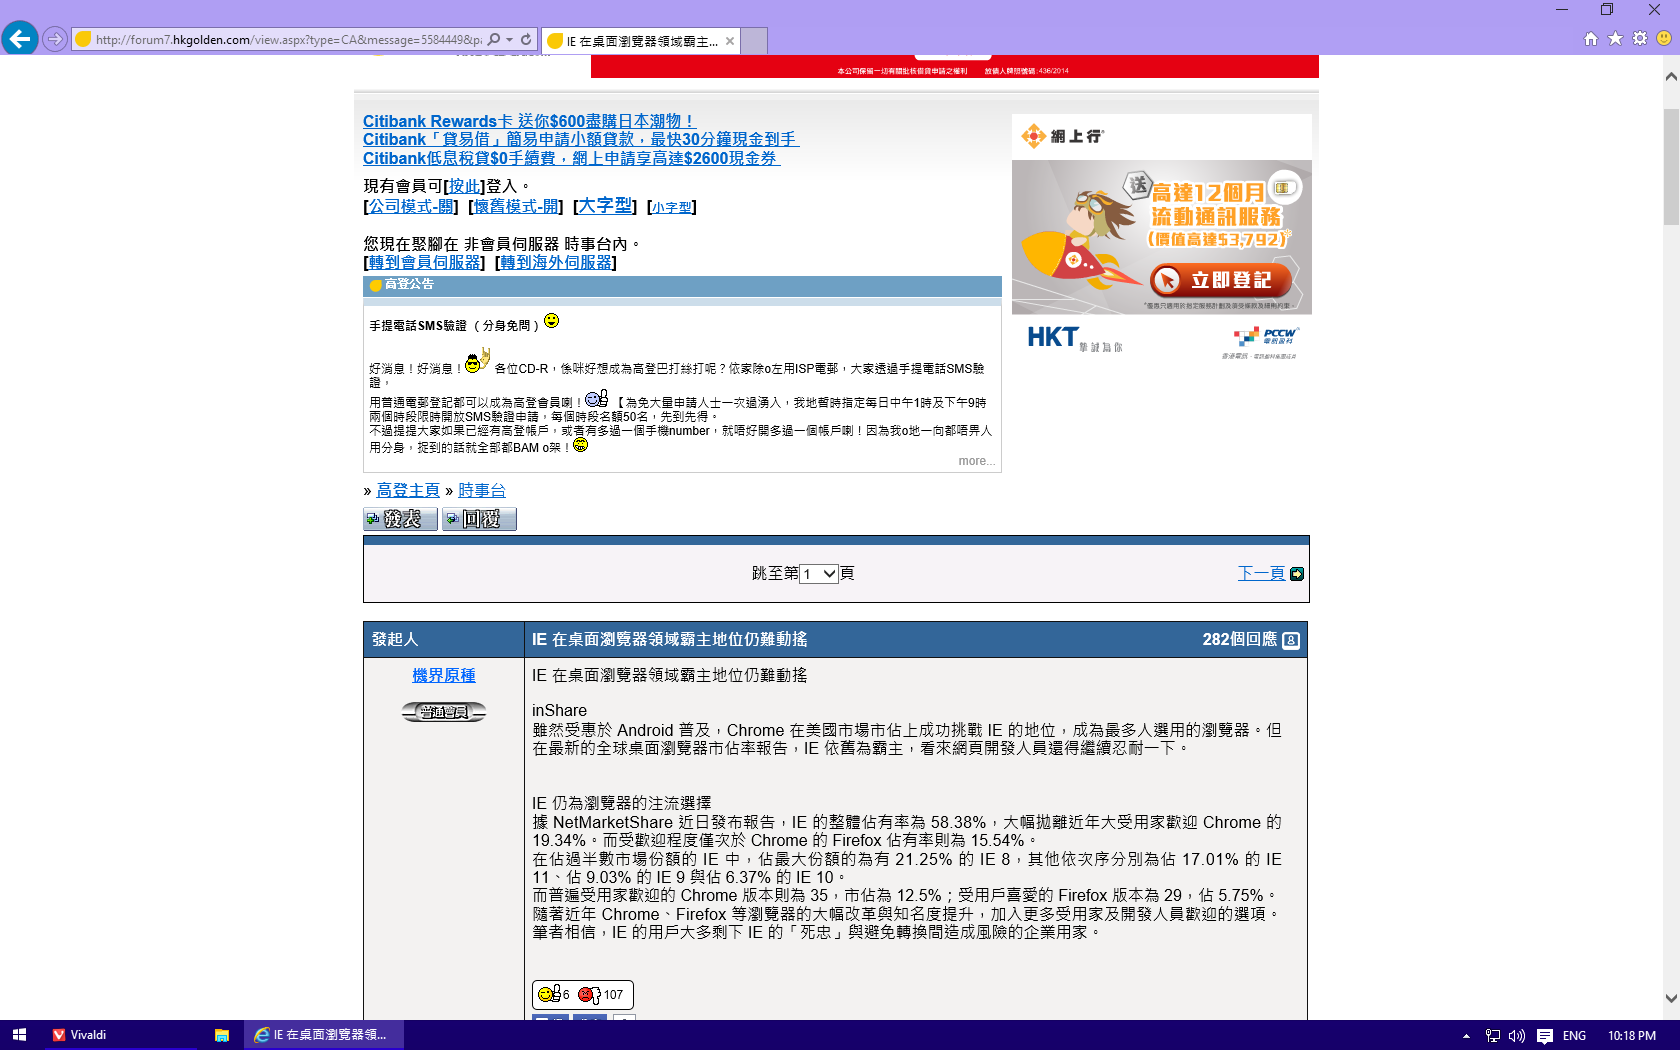 Firefox has bad Chinese font rendering on Windows